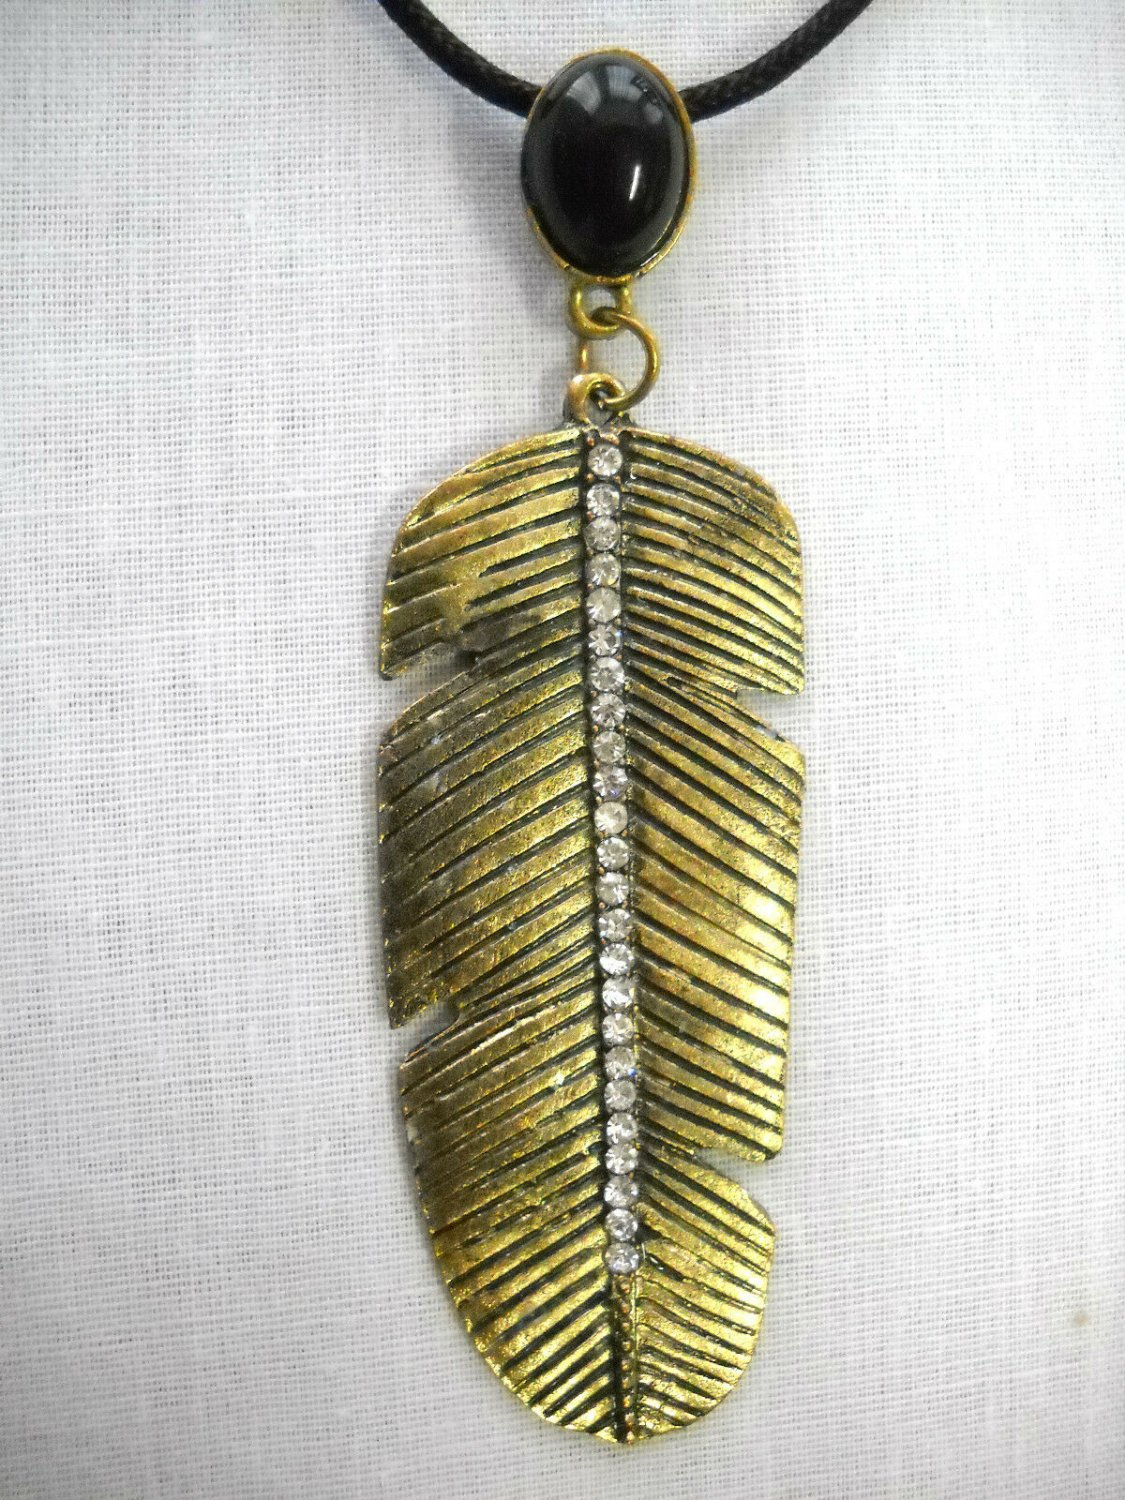 BIG BRASS ANTIQUED FEATHER CLEAR CRYSTALS SPINE 2 TIER ADJ PENDANT NECKLACE